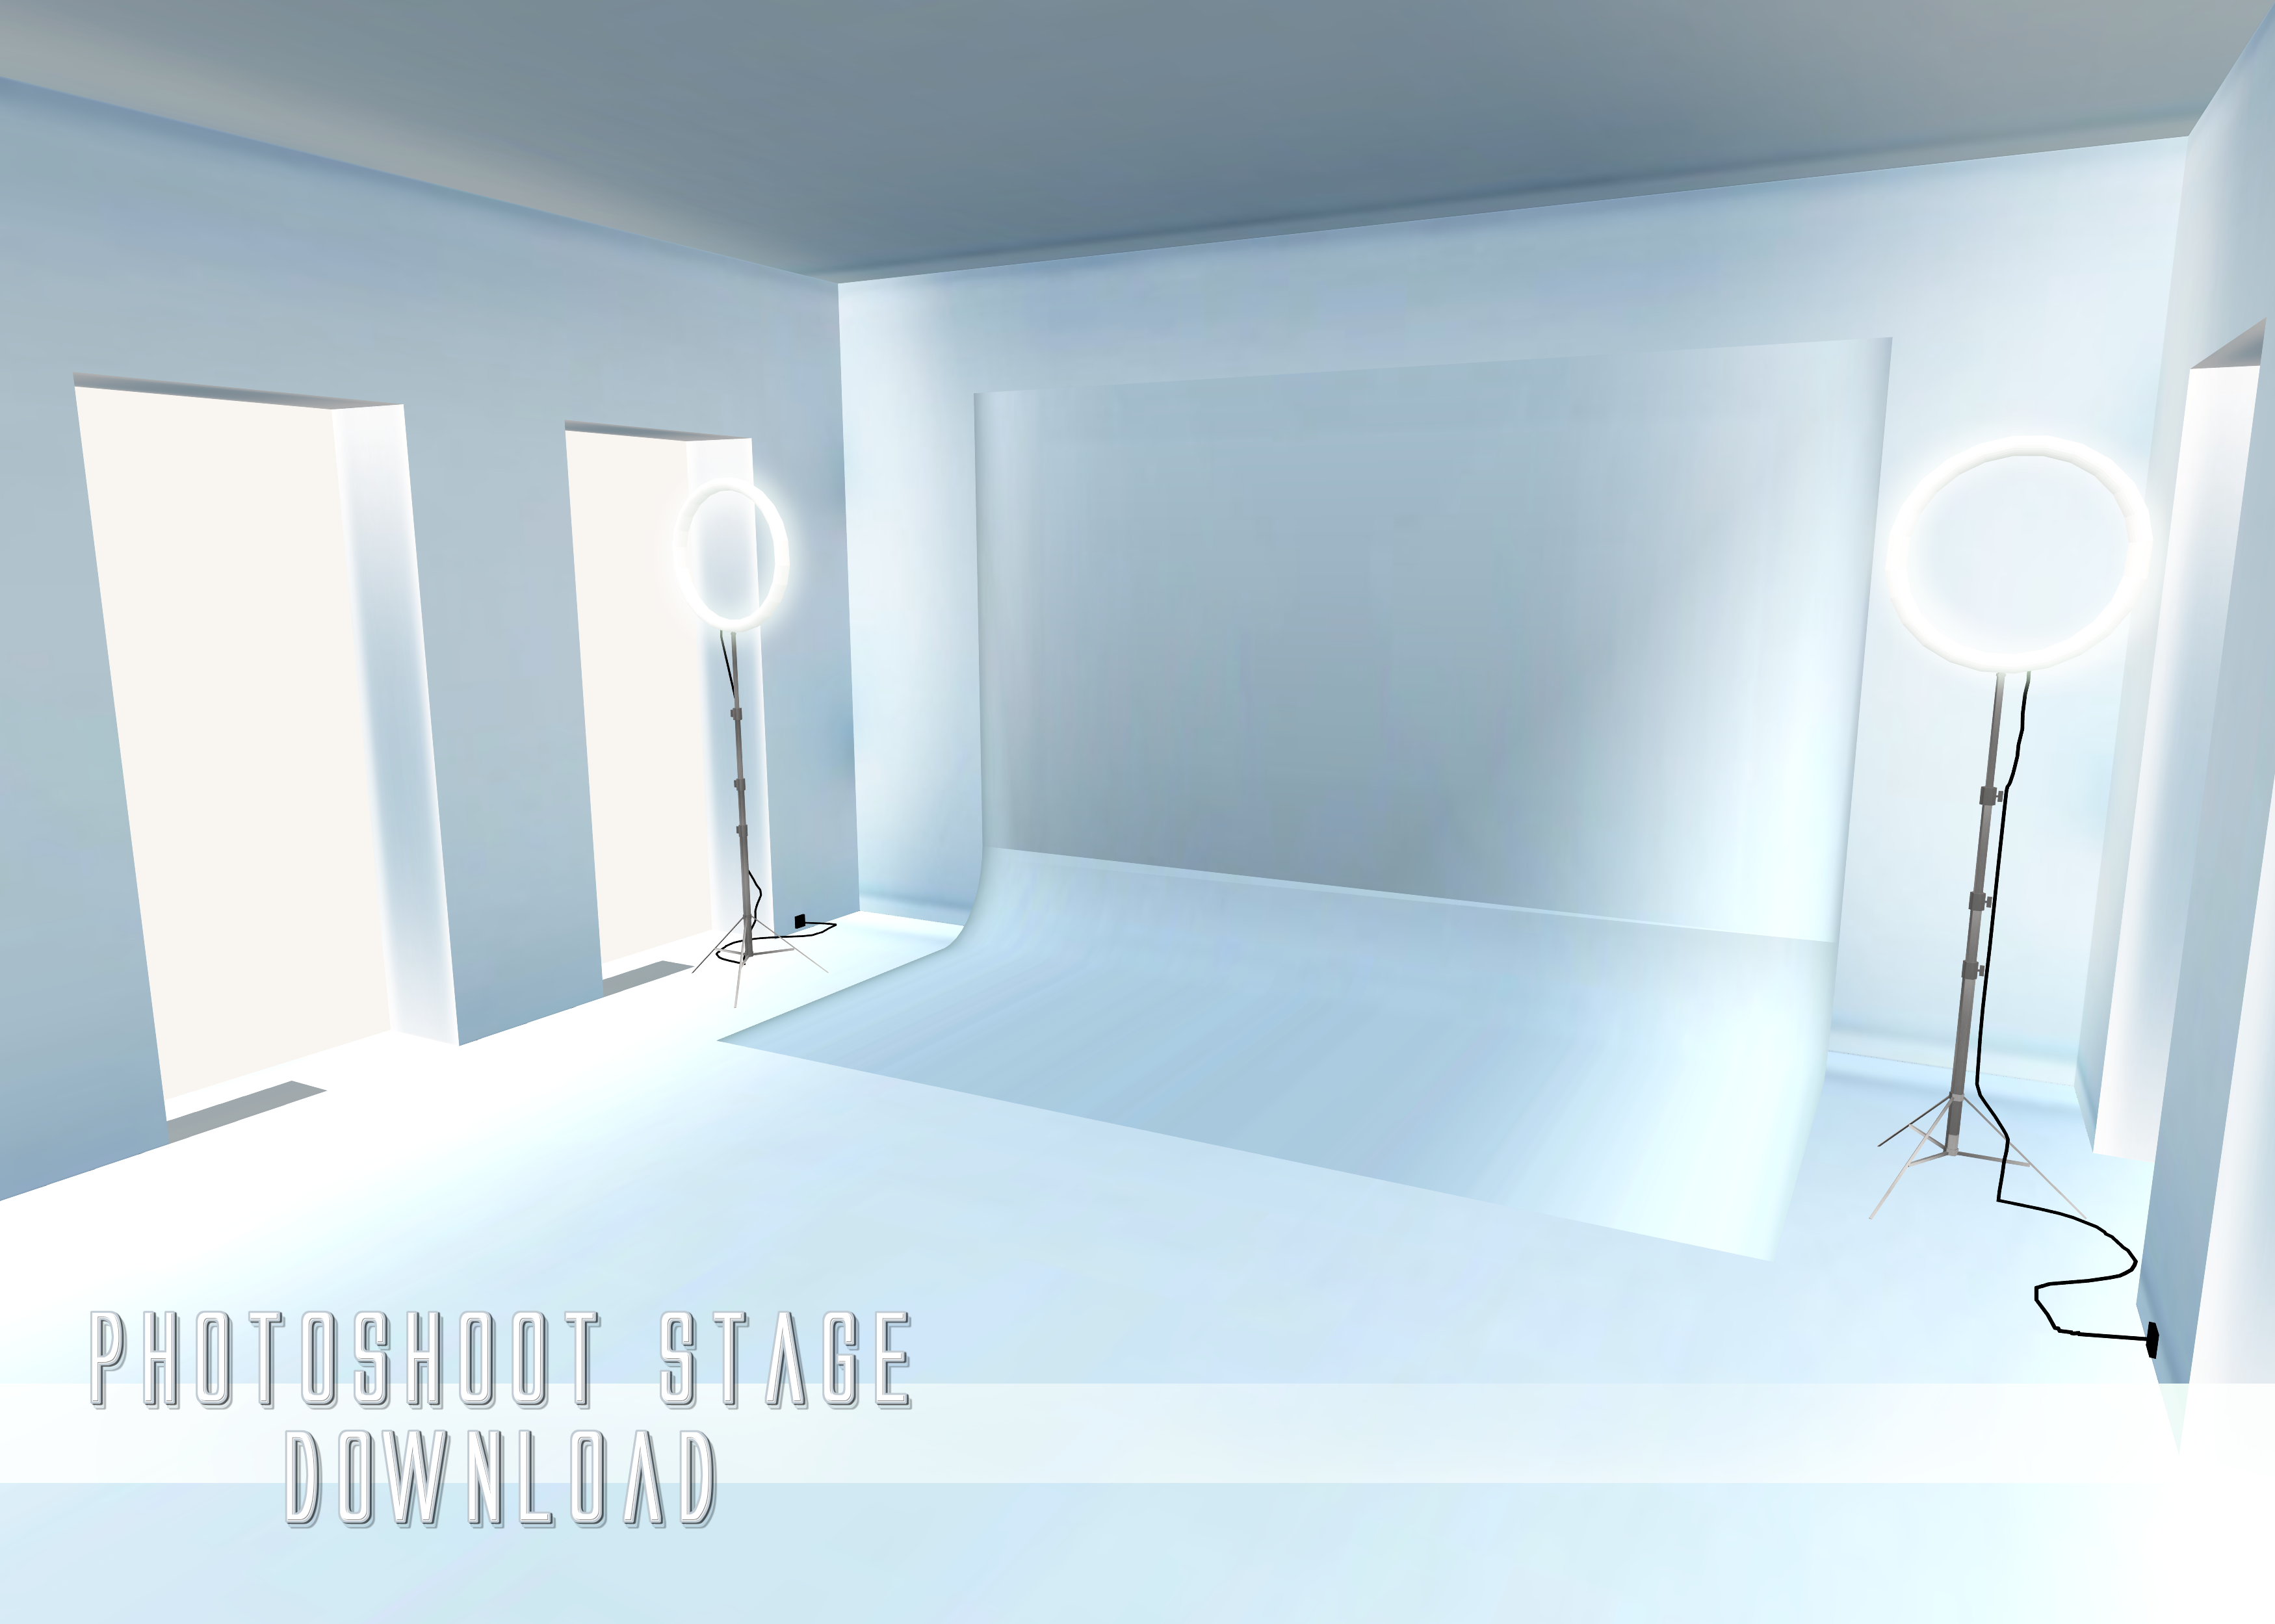 How To Make A White Room In Blender